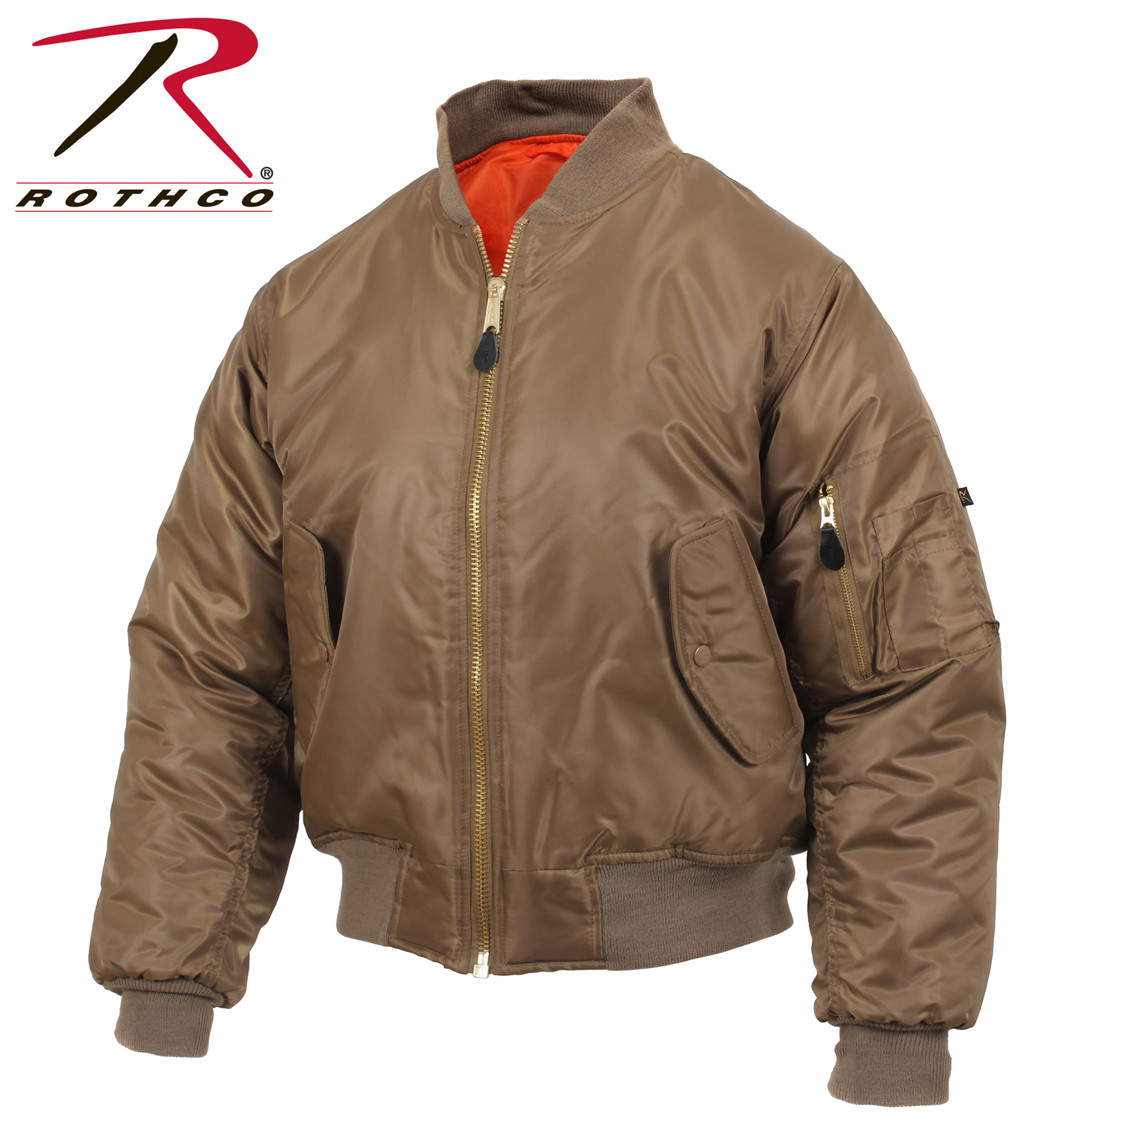 Rothco 3 Season Concealed Carry Jacket